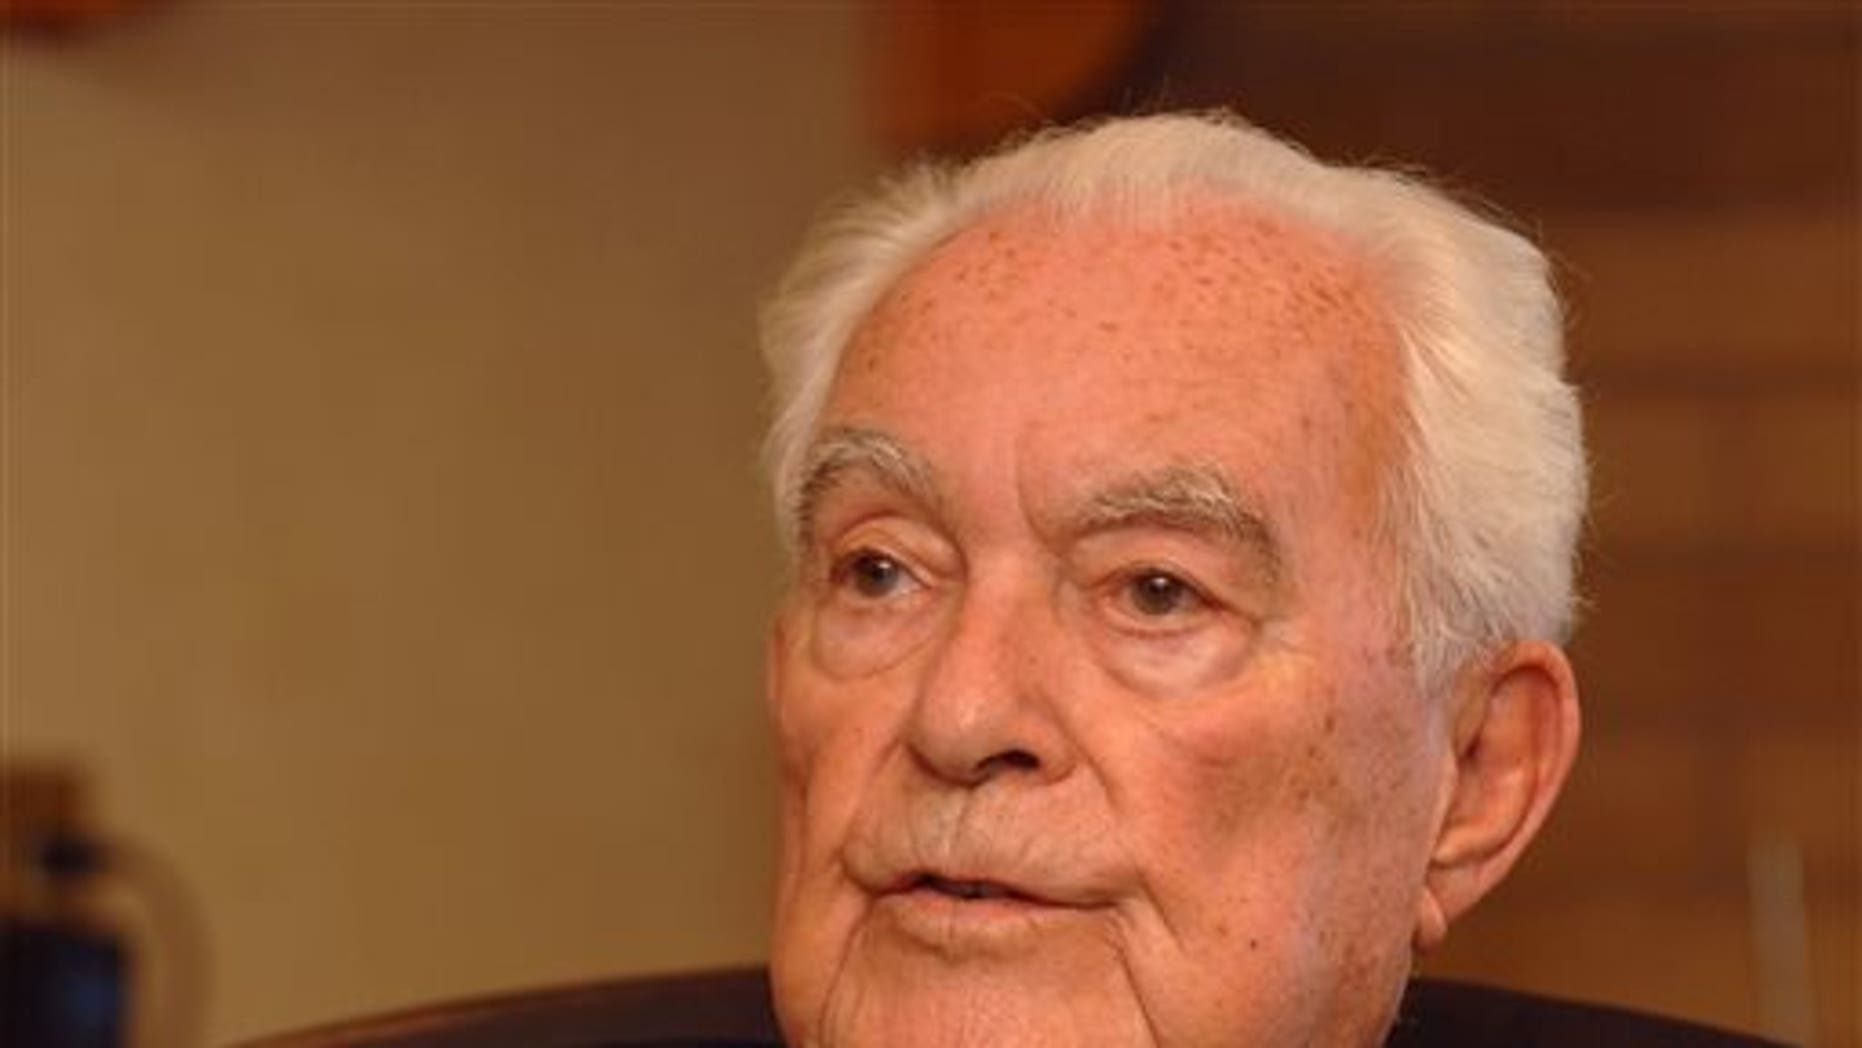 In this 2007 file photo, the Rev. Theodore Hesburgh, C.S.C, president emeritus of the University of Notre Dame, talks about his experiences over 90 years of life at his desk in the Hesburgh Library on the campus of the University of Notre Dame in South Bend, Ind.